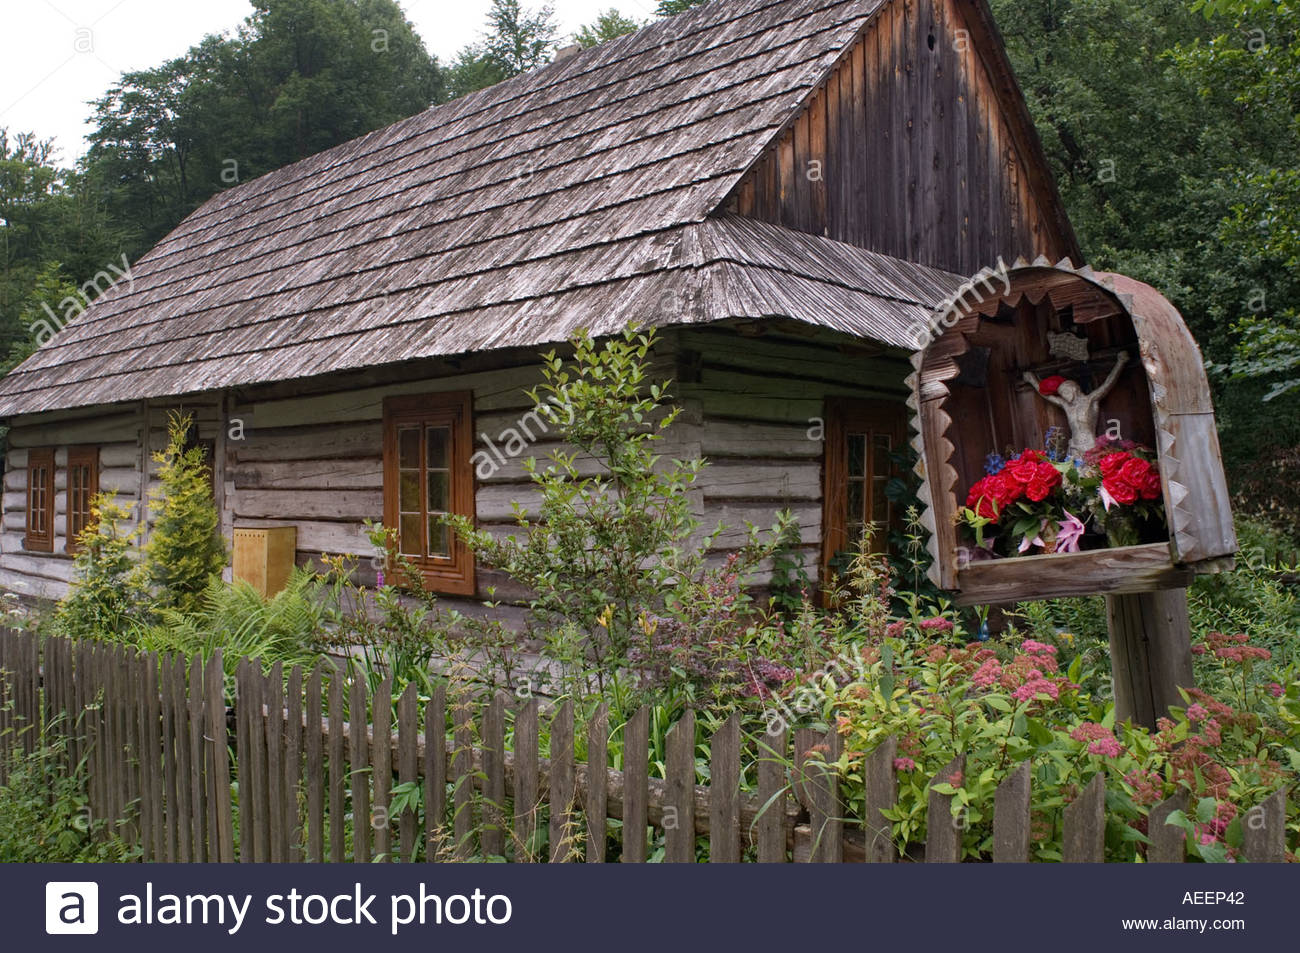 Catholic shrine outside a traditional wooden house in the polish stock photo royalty free image - Traditional polish houses wood mastership ...